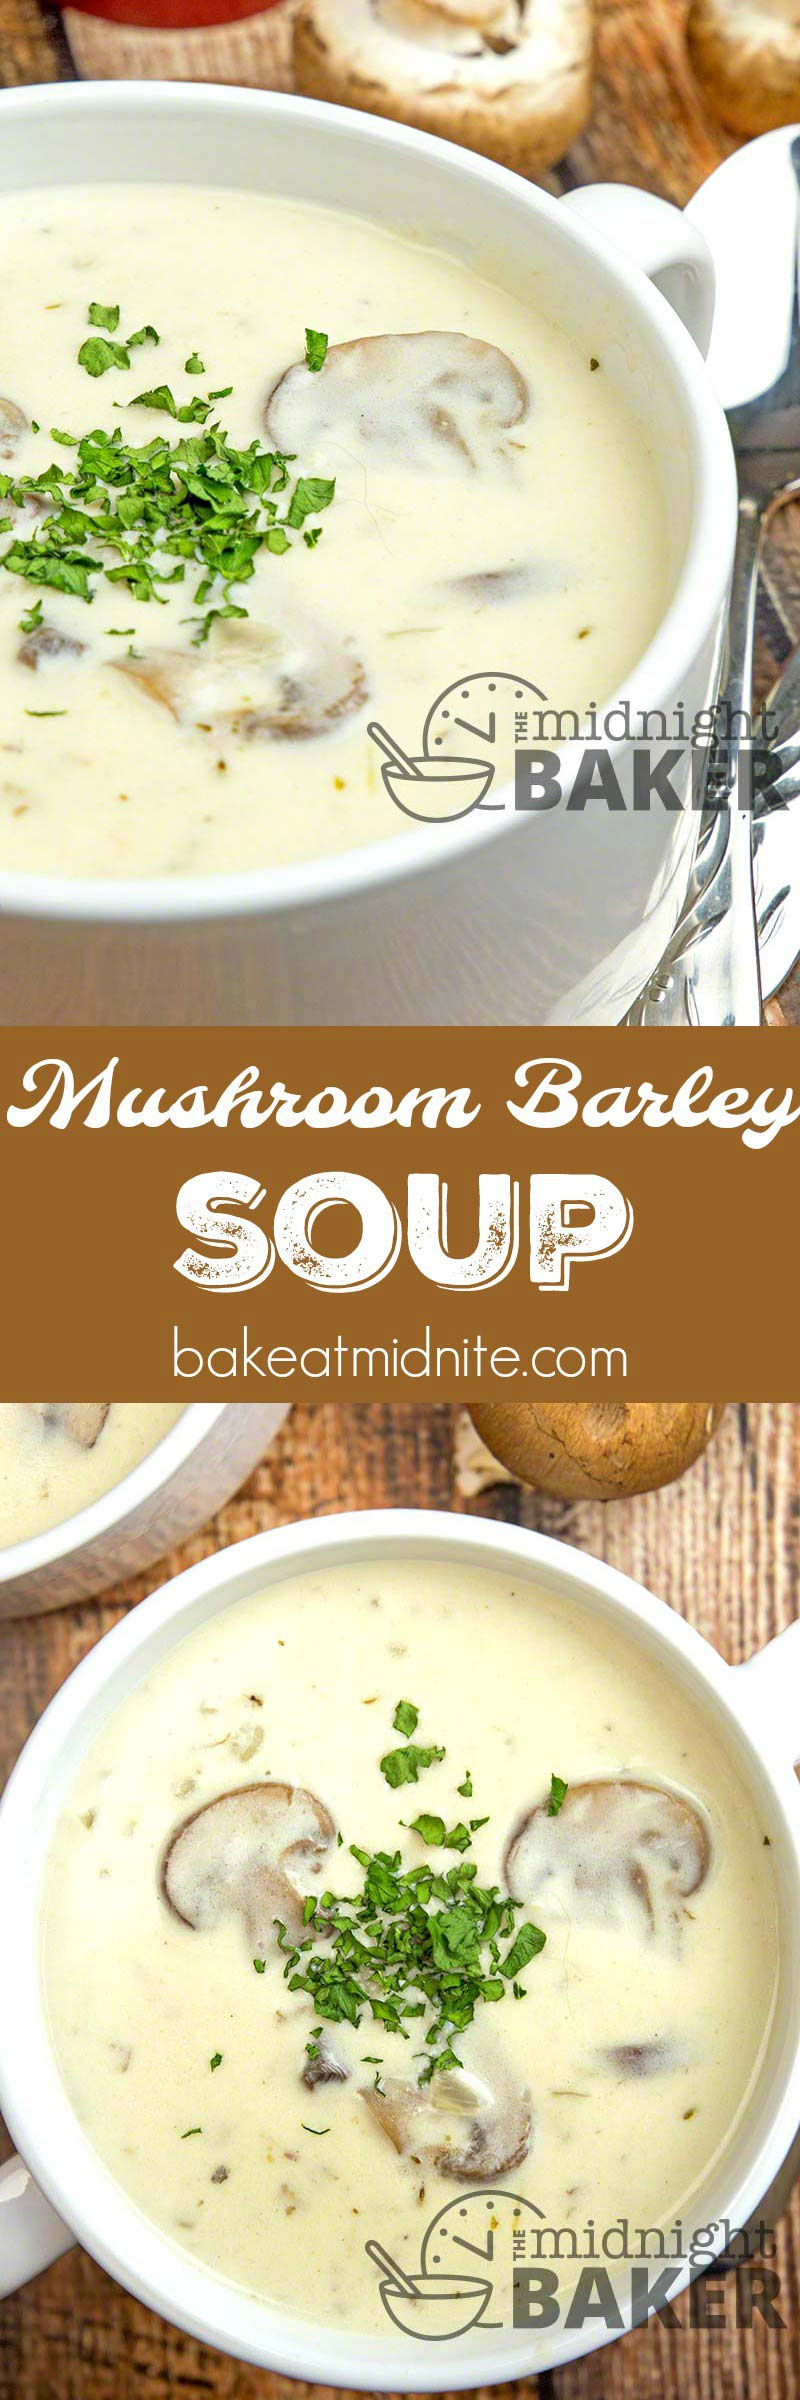 Nothing like a comforting bowl of creamy mushroom barley soup to warm you up on a winter's day.